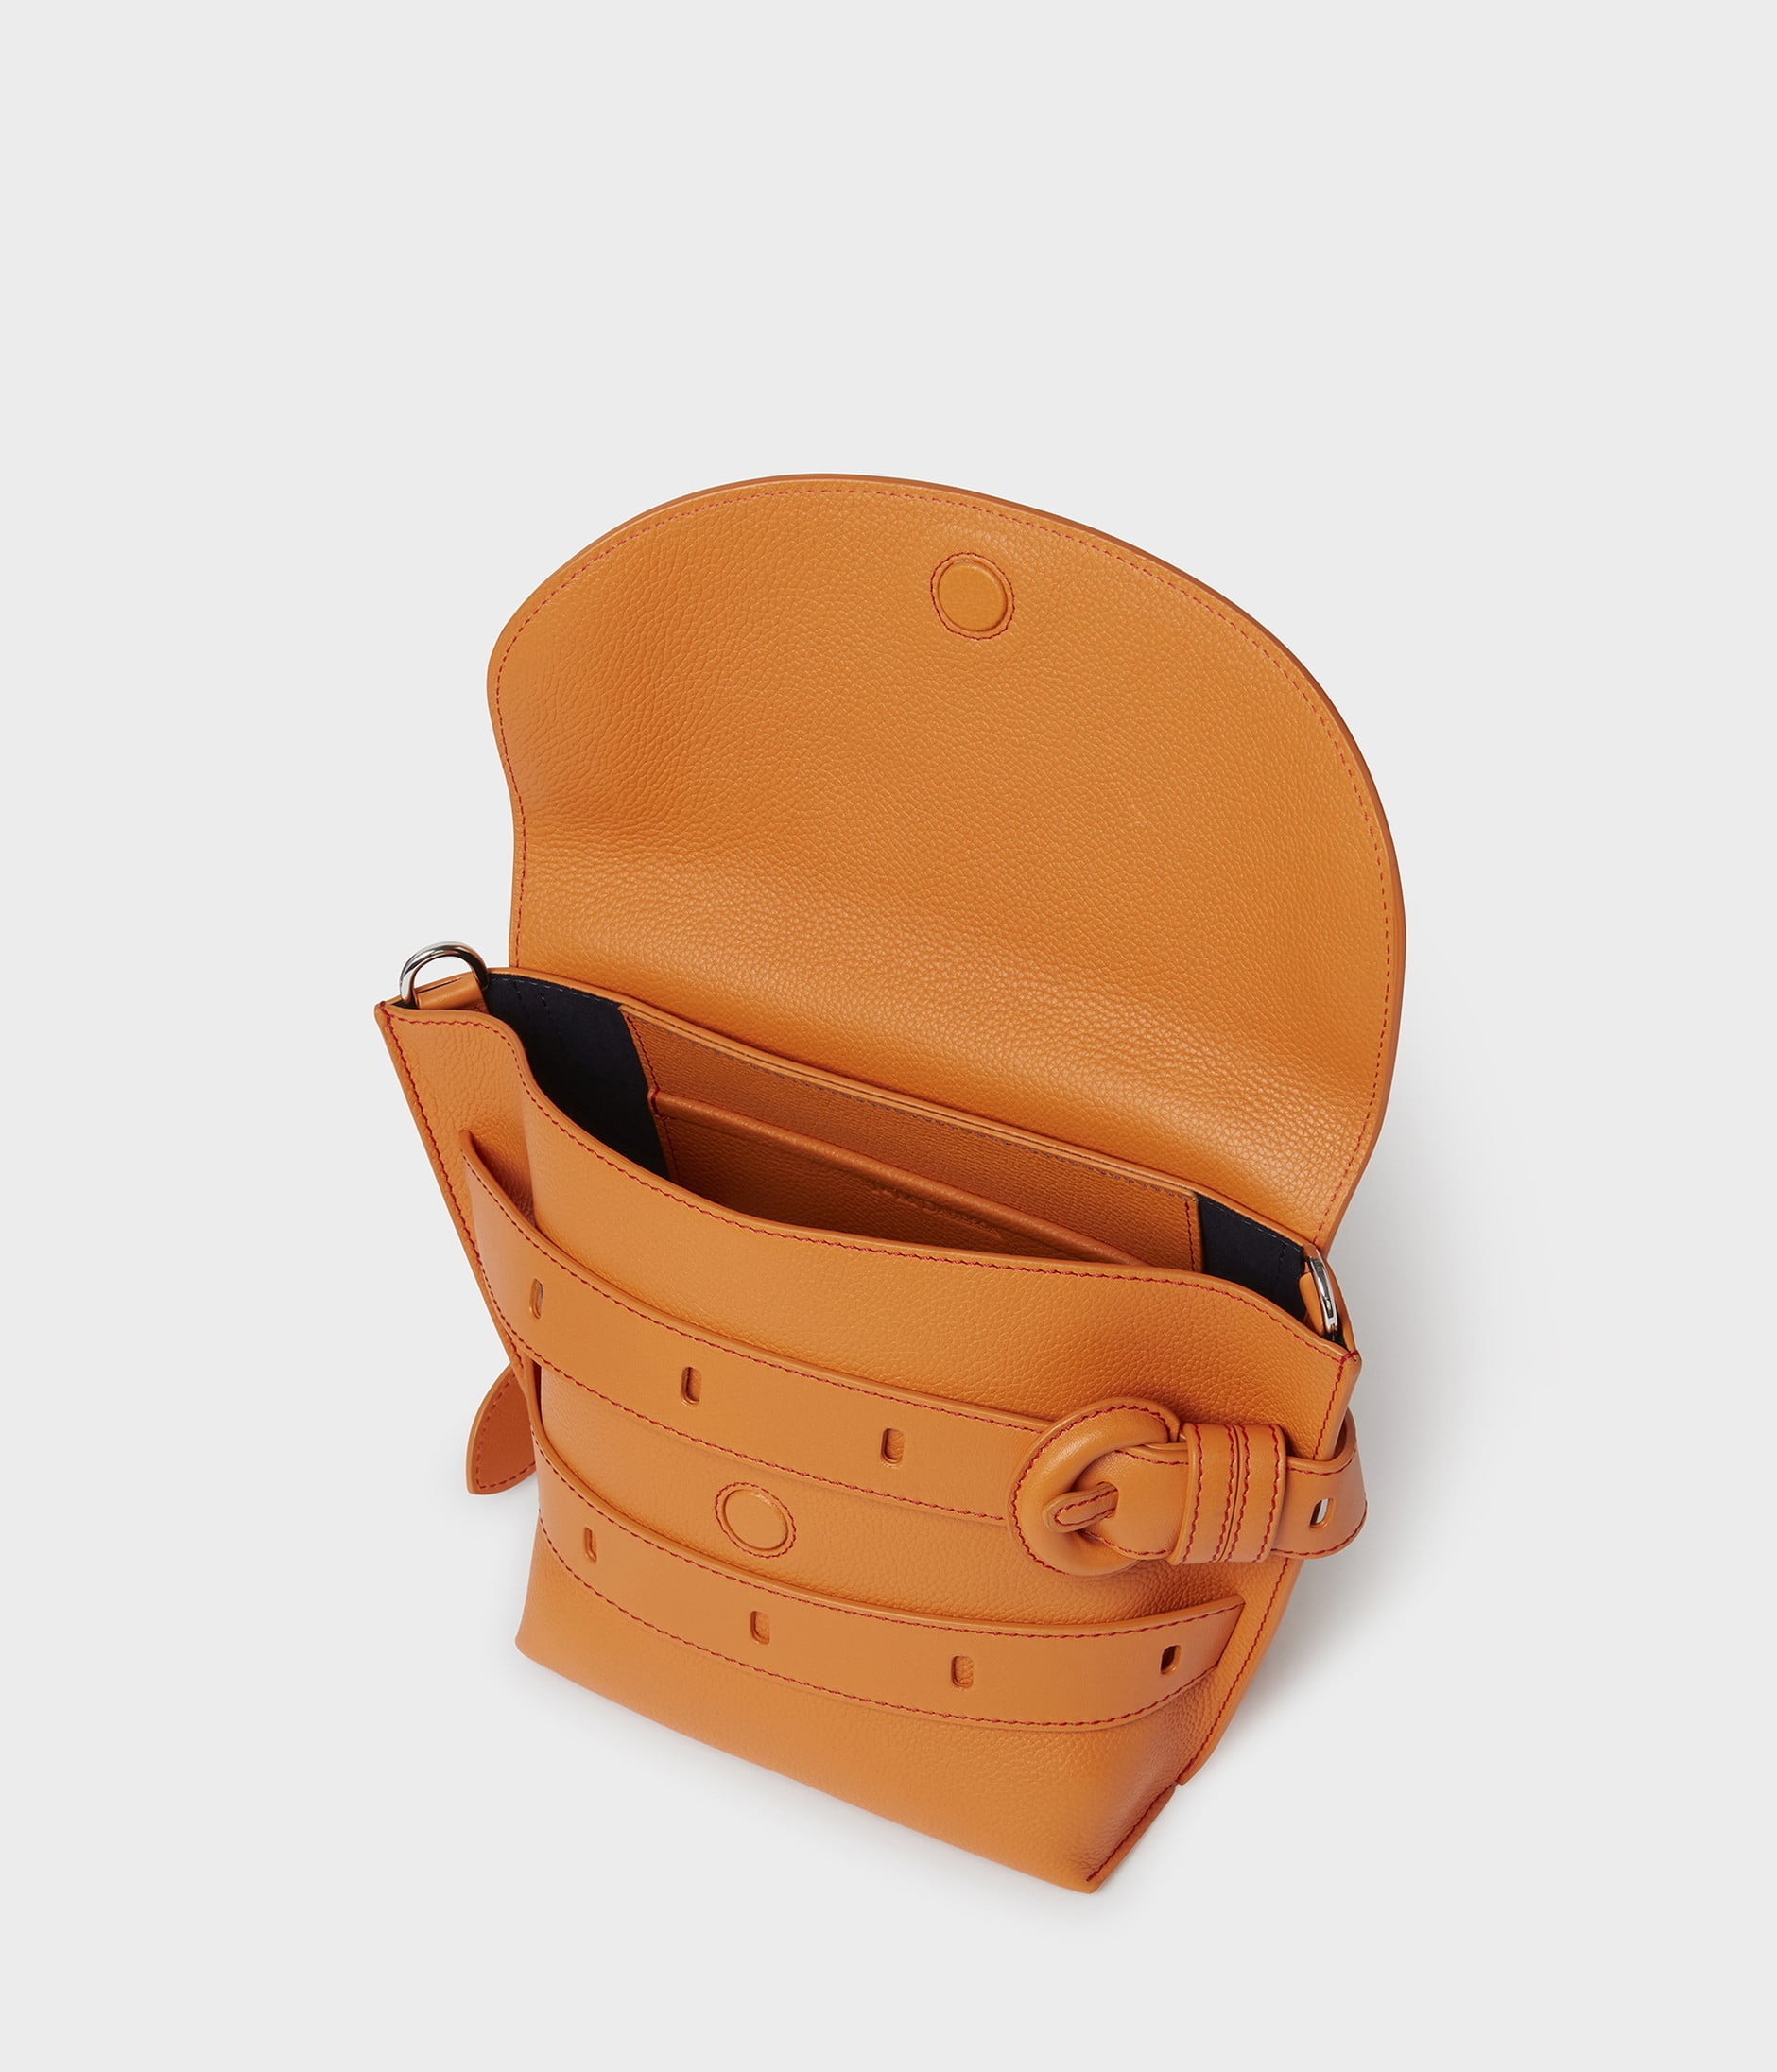 THE BELT BAG 詳細画像 TANGERINE ORANGE 3